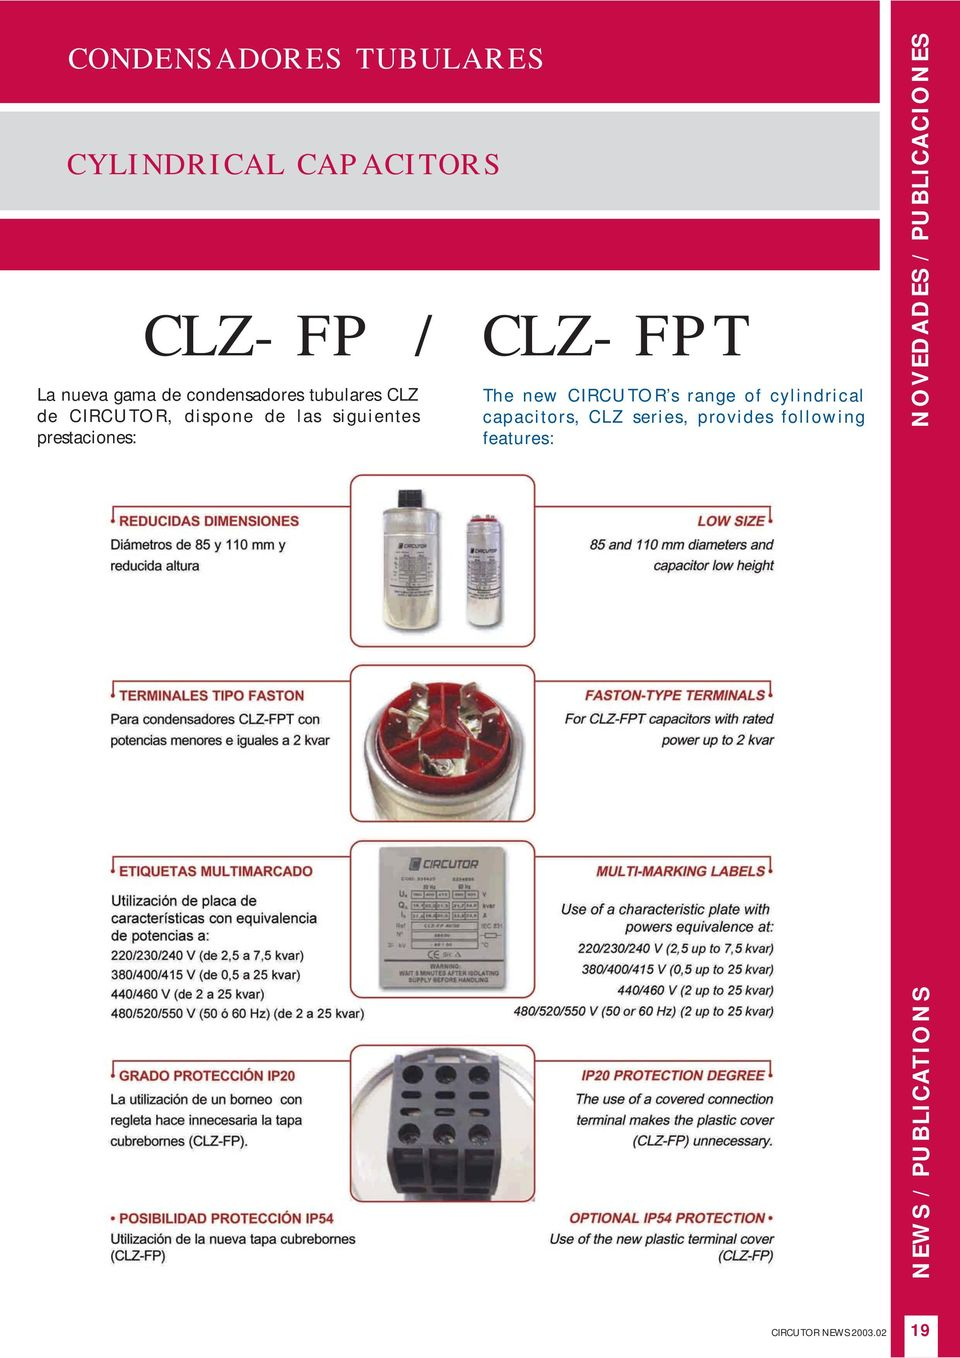 The new CIRCUTOR s range of cylindrical capacitors, CLZ series, provides